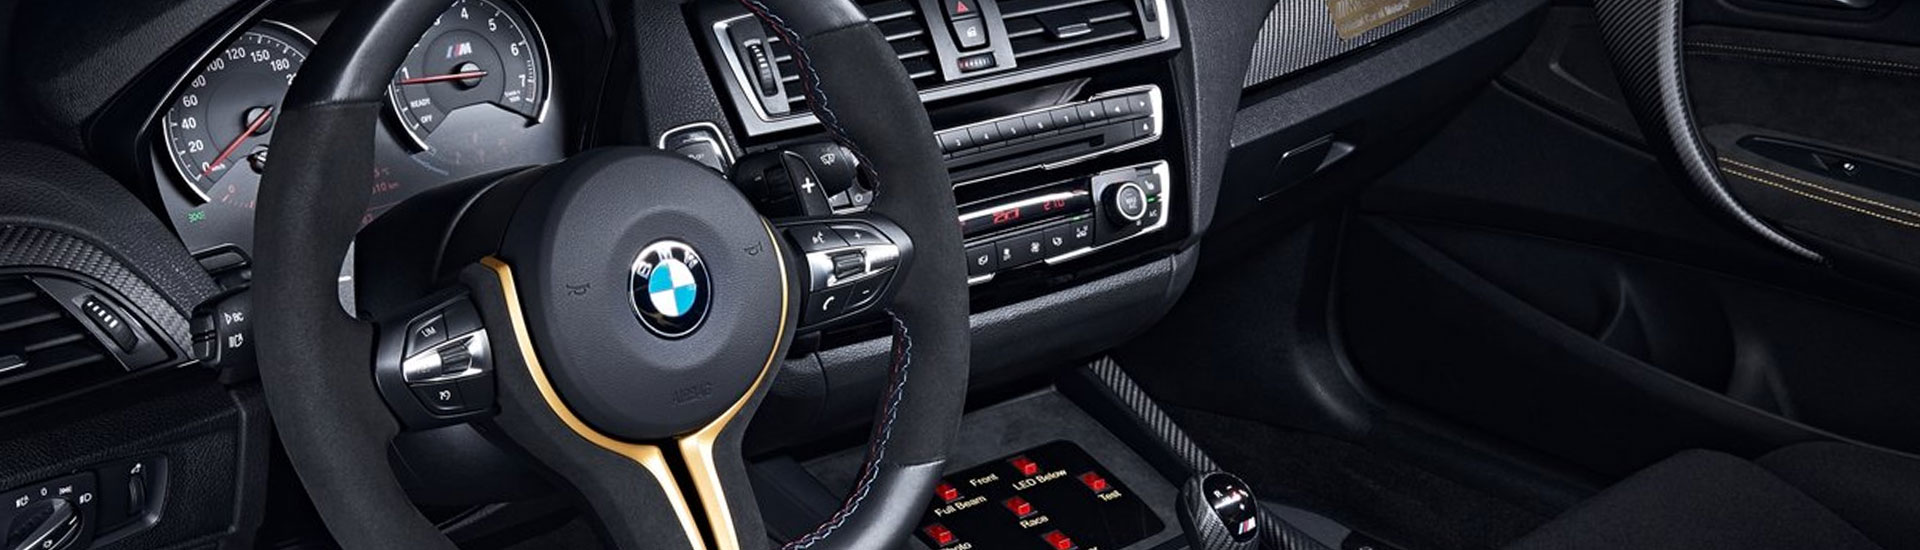 BMW Custom Dash Kits